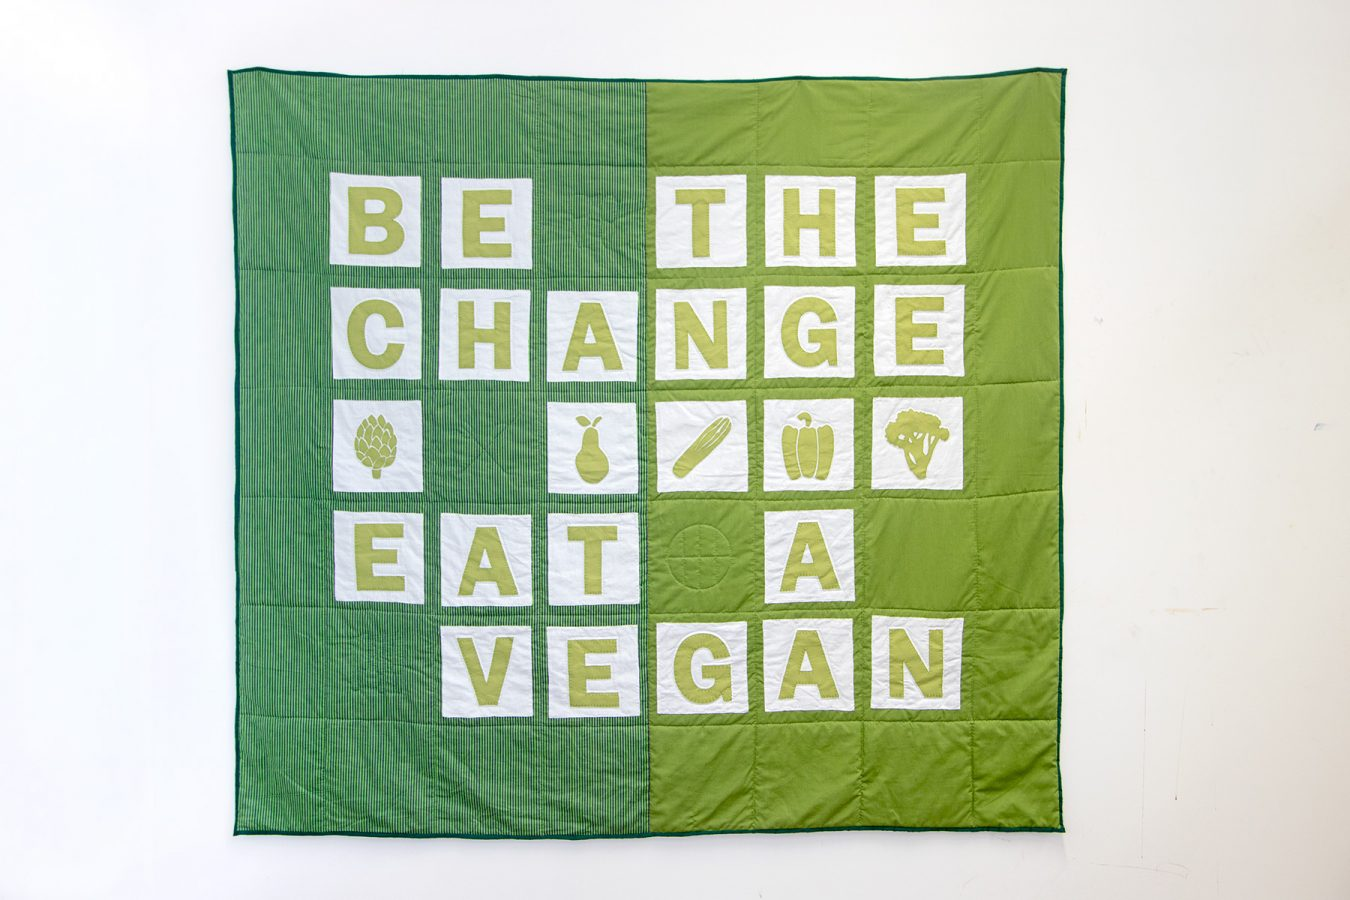 Be The Change, Eat a Vegan